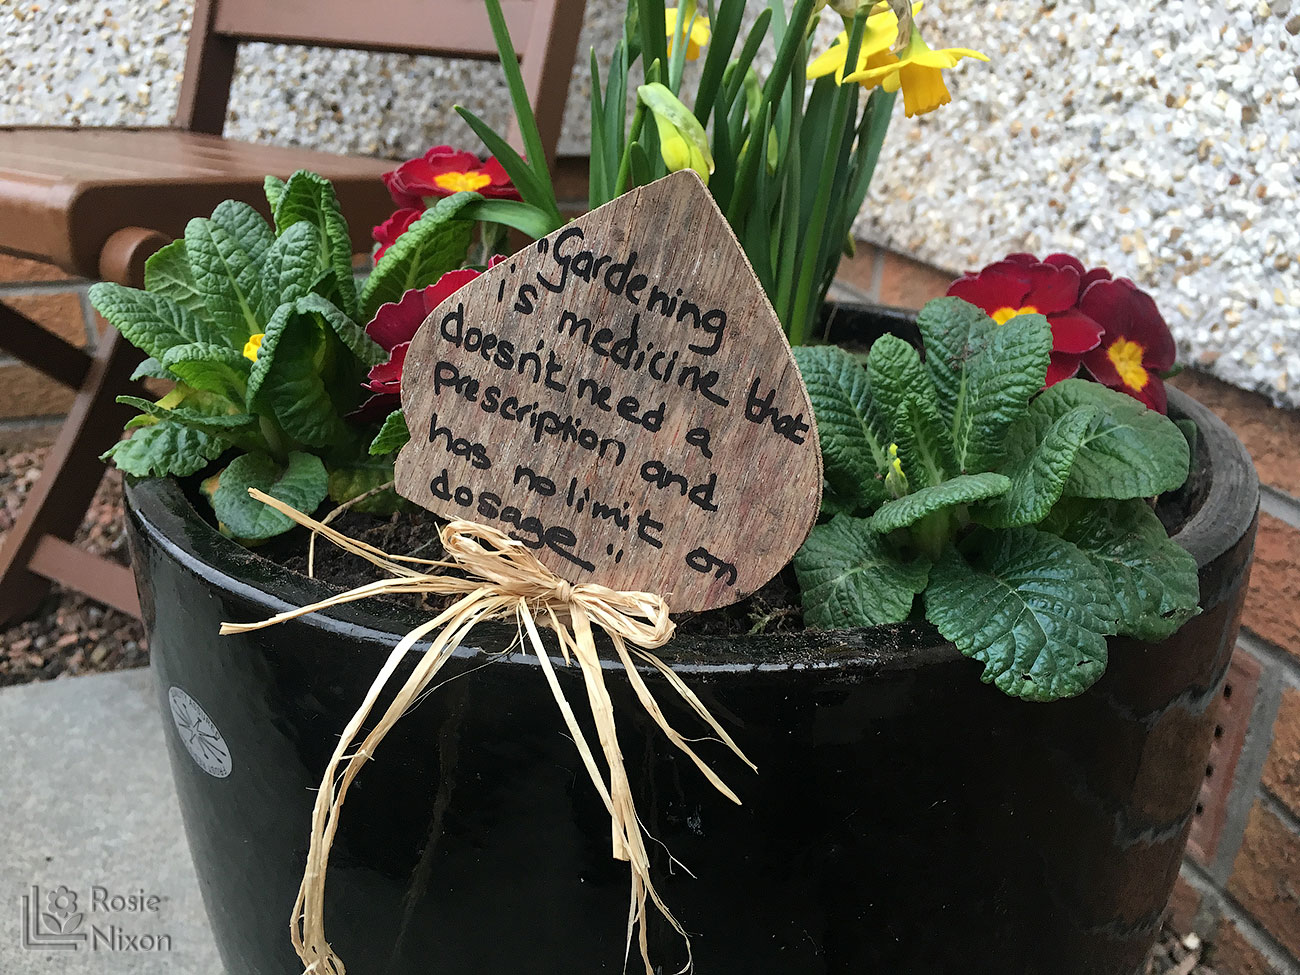 Planted container quote for Beechgrove garden